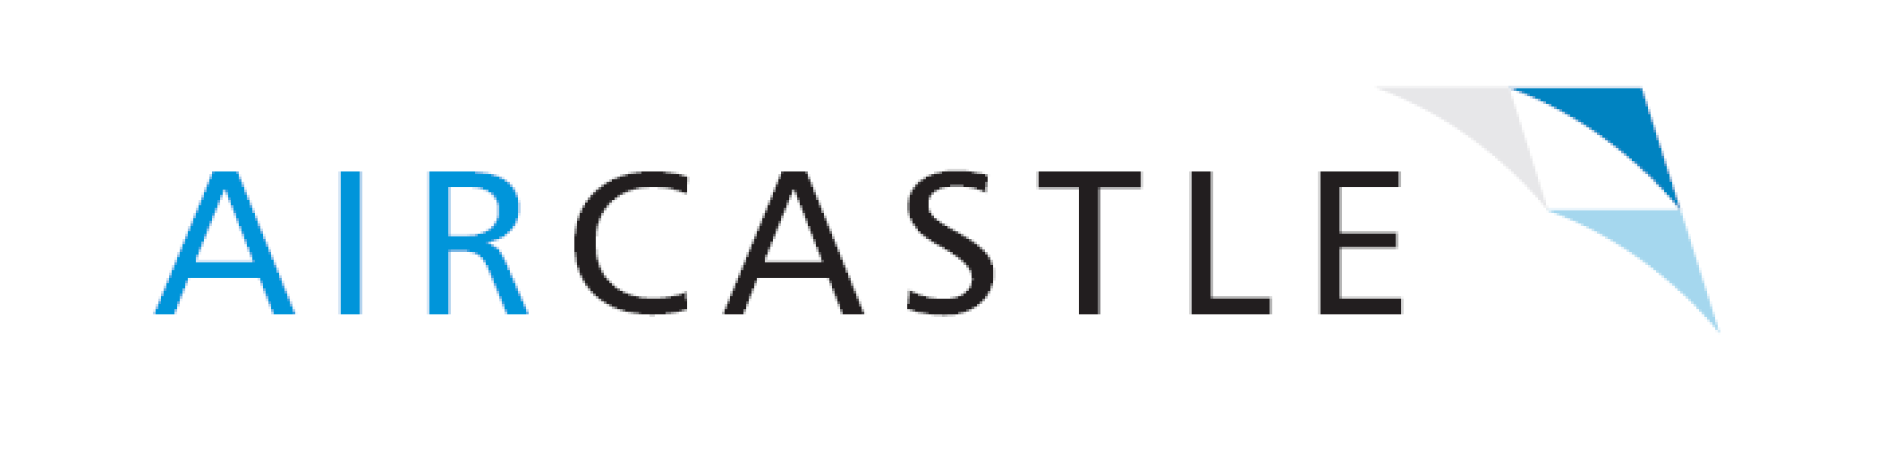 Aircastle Limited Logo